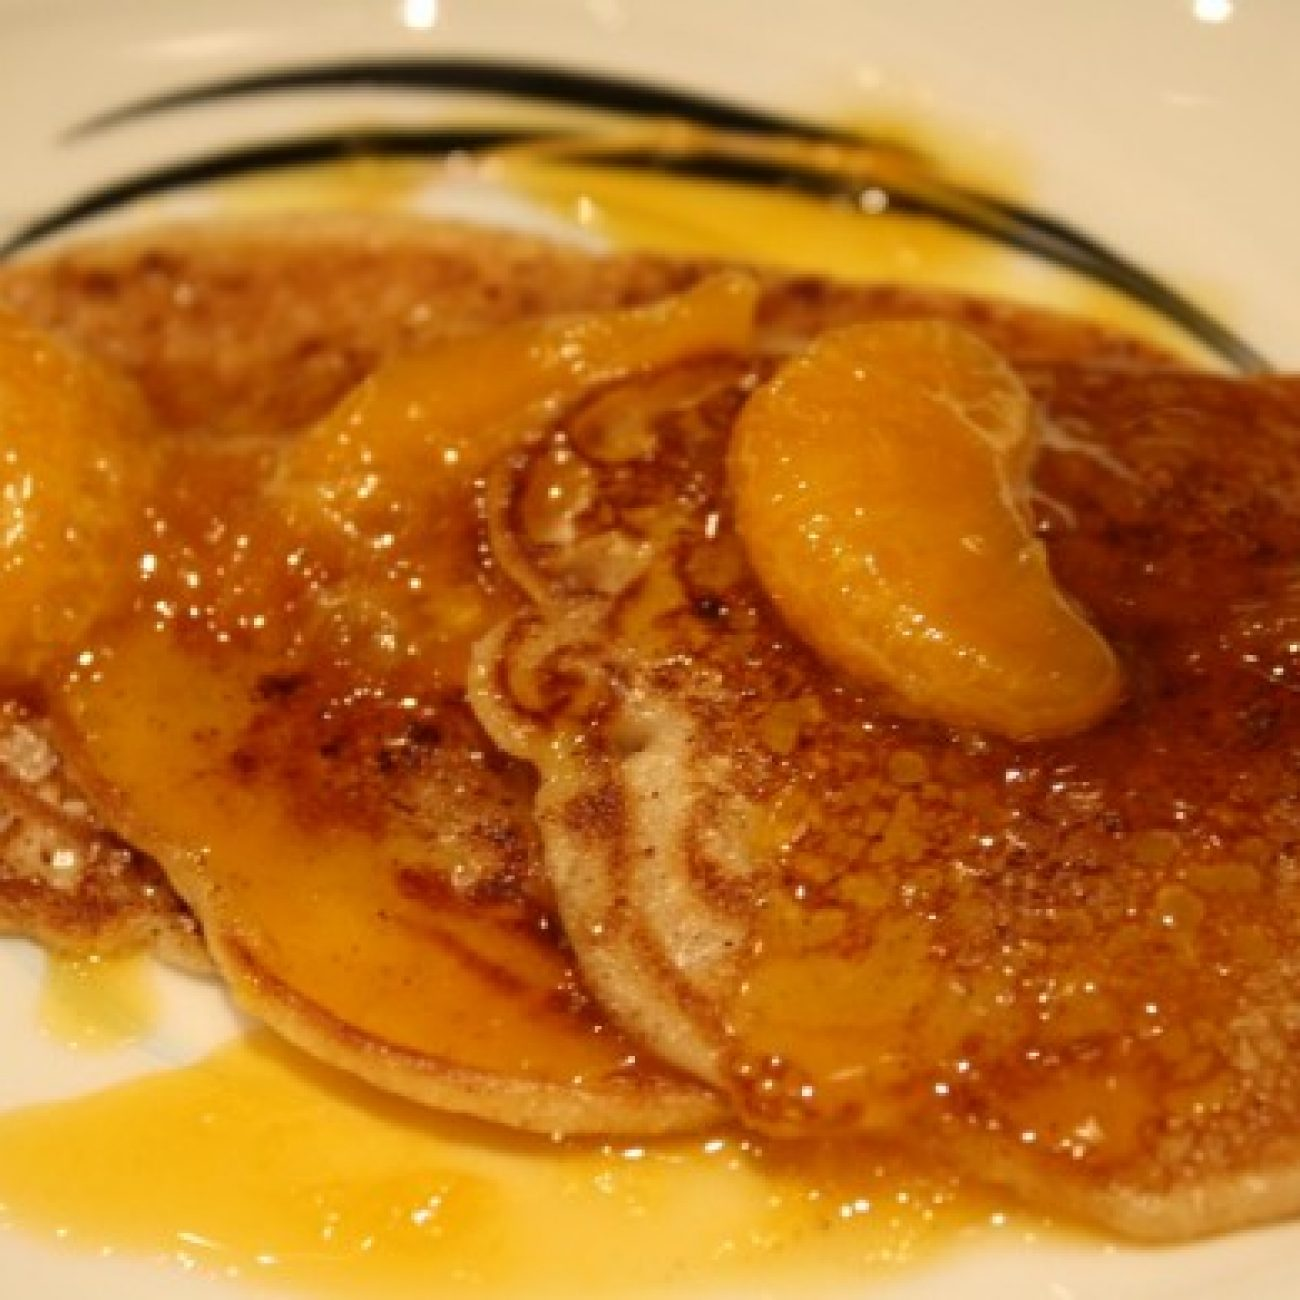 Oranged Glazed no egg no milk Pancakes